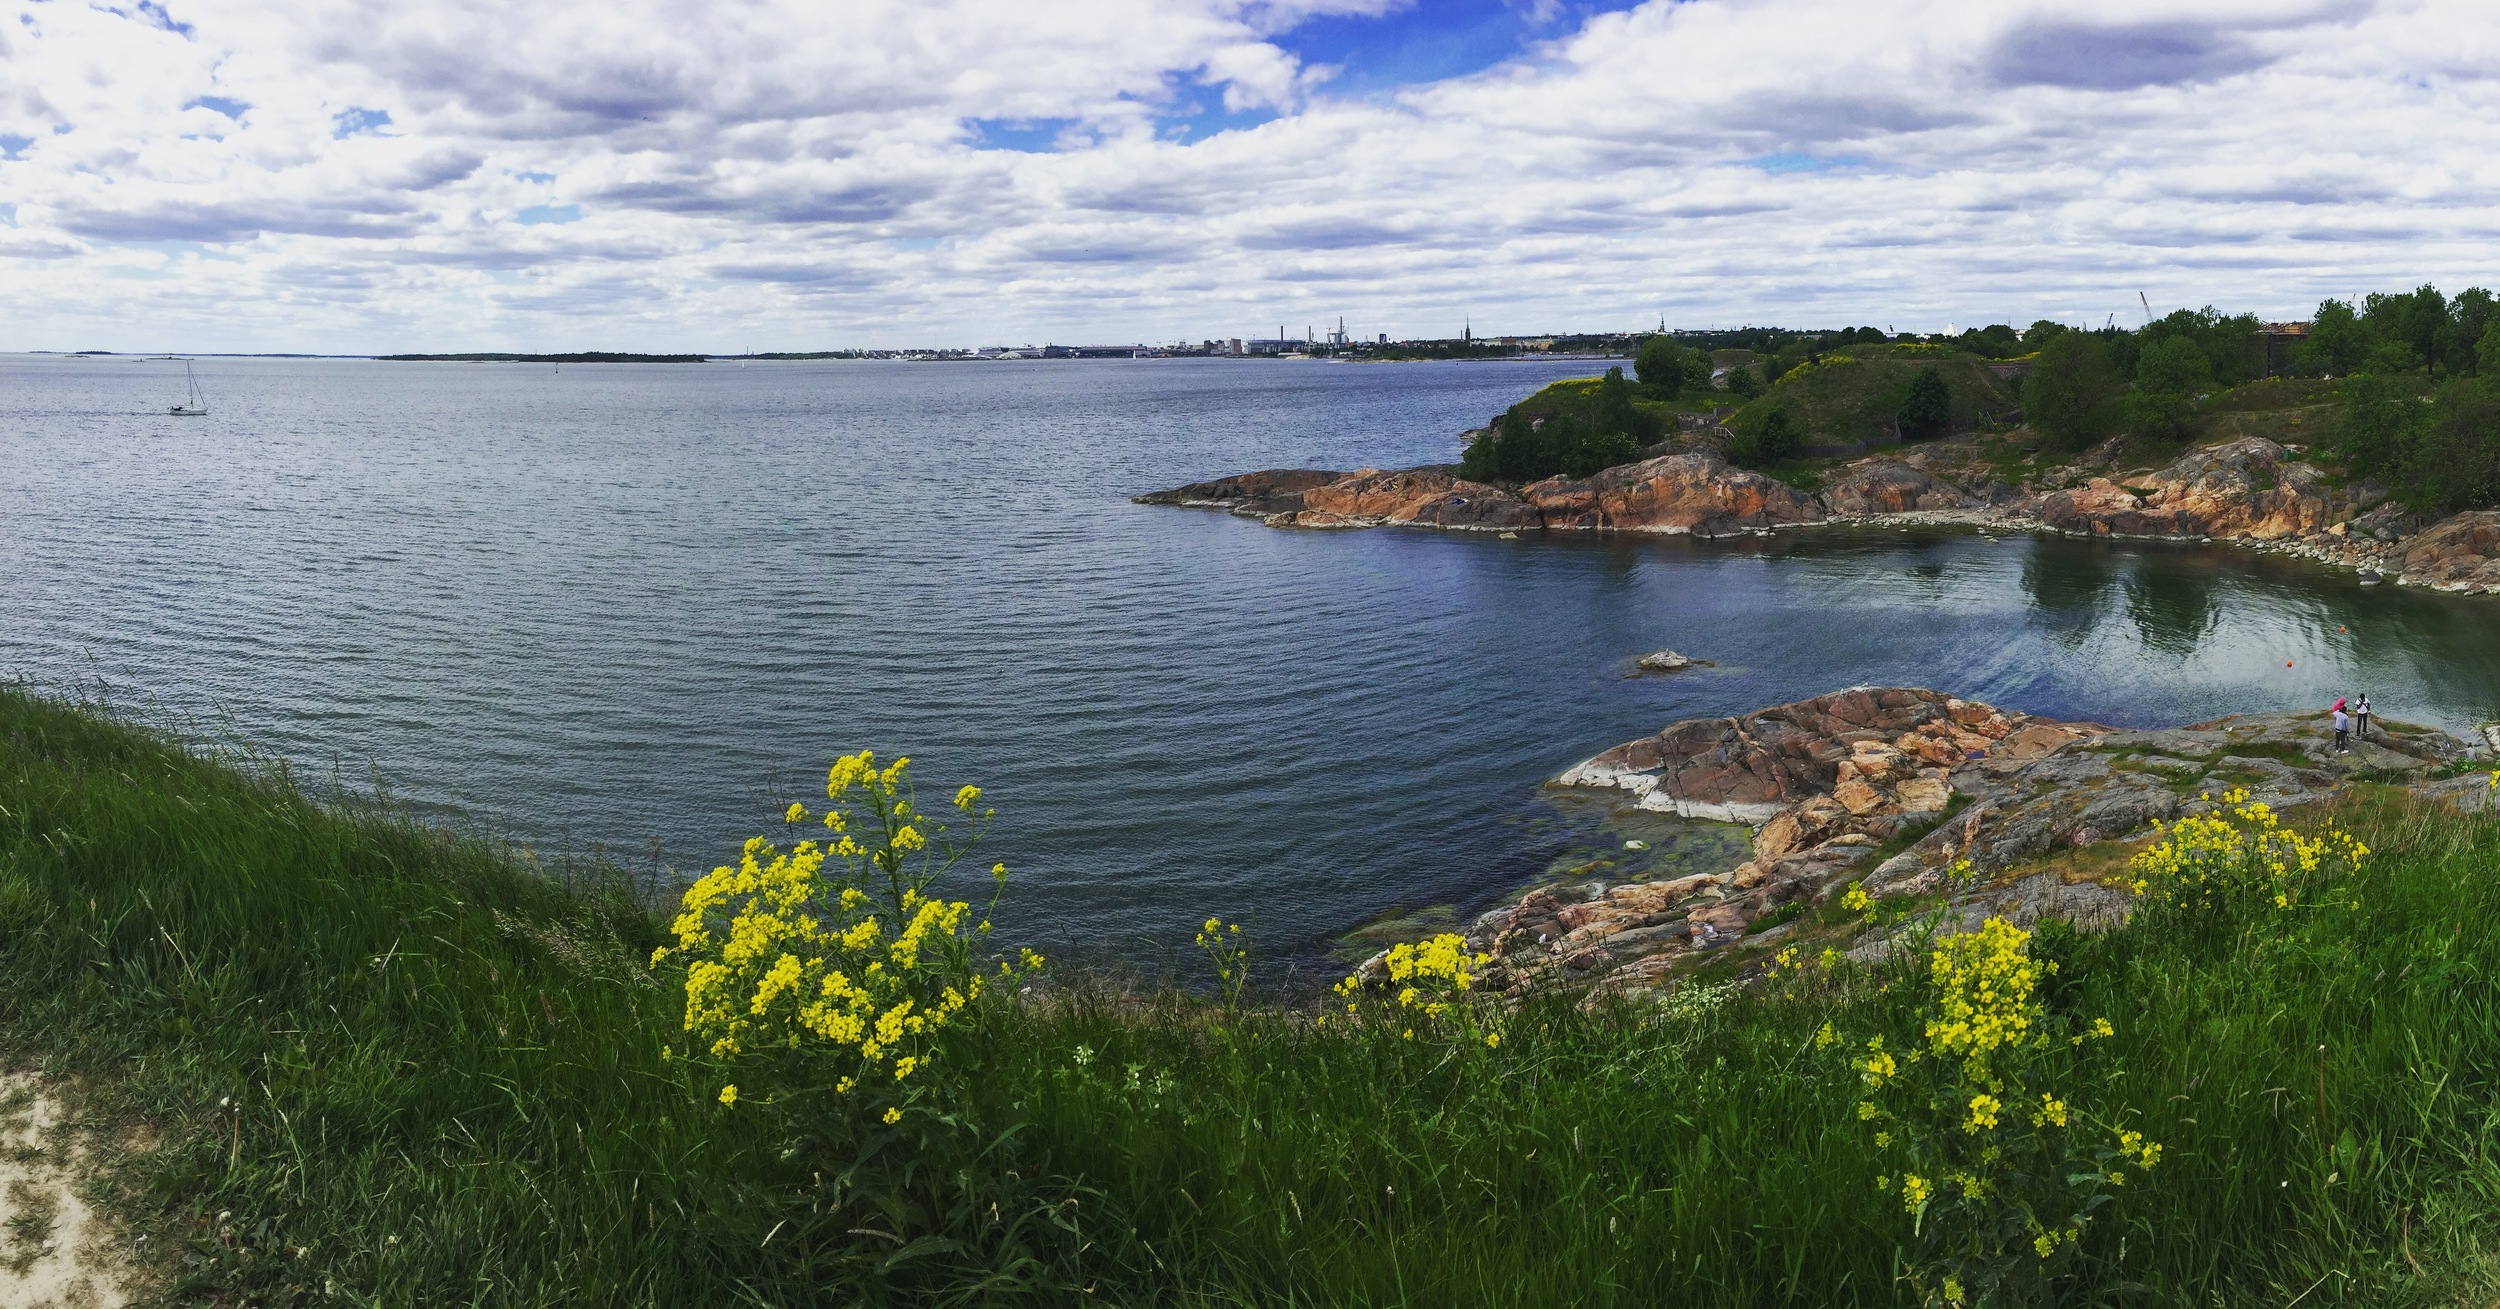 Suomenlinna - the Sea Fortress - Finland. Photo by Paige Jarreau.